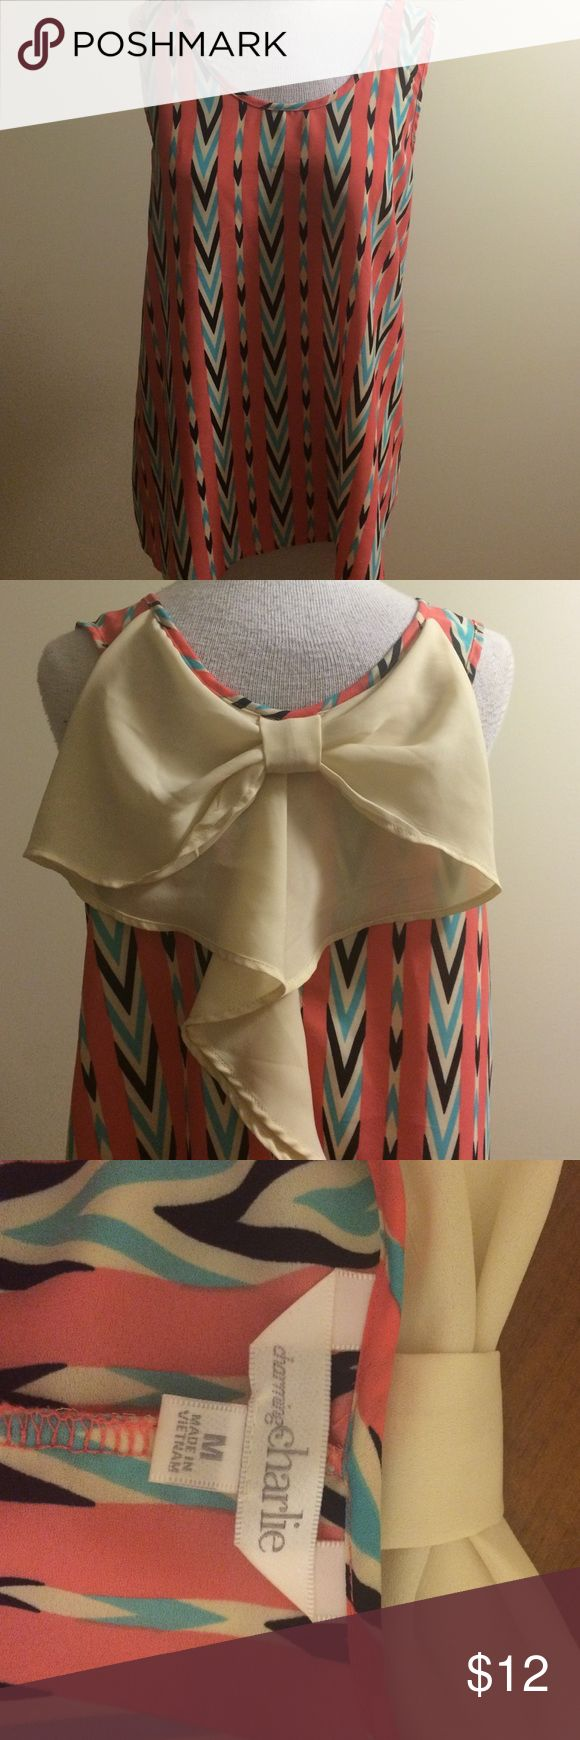 Charming Charlie Tank Top Multi colored pink blue and white tank top / tunic! With flown back white bow detail! Charming Charlie Tops Tank Tops